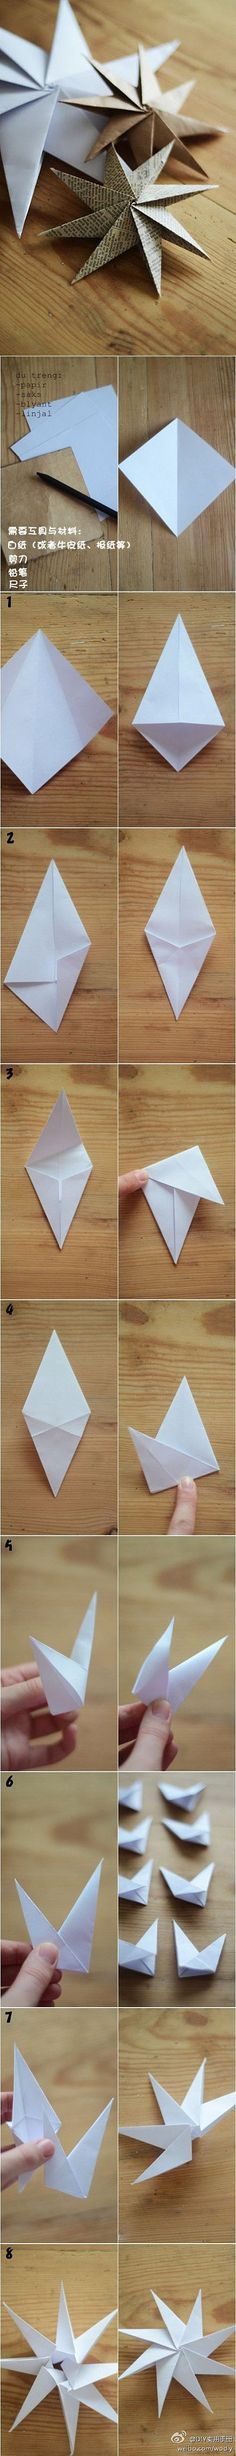 Origami 8-point star -- tutorial: